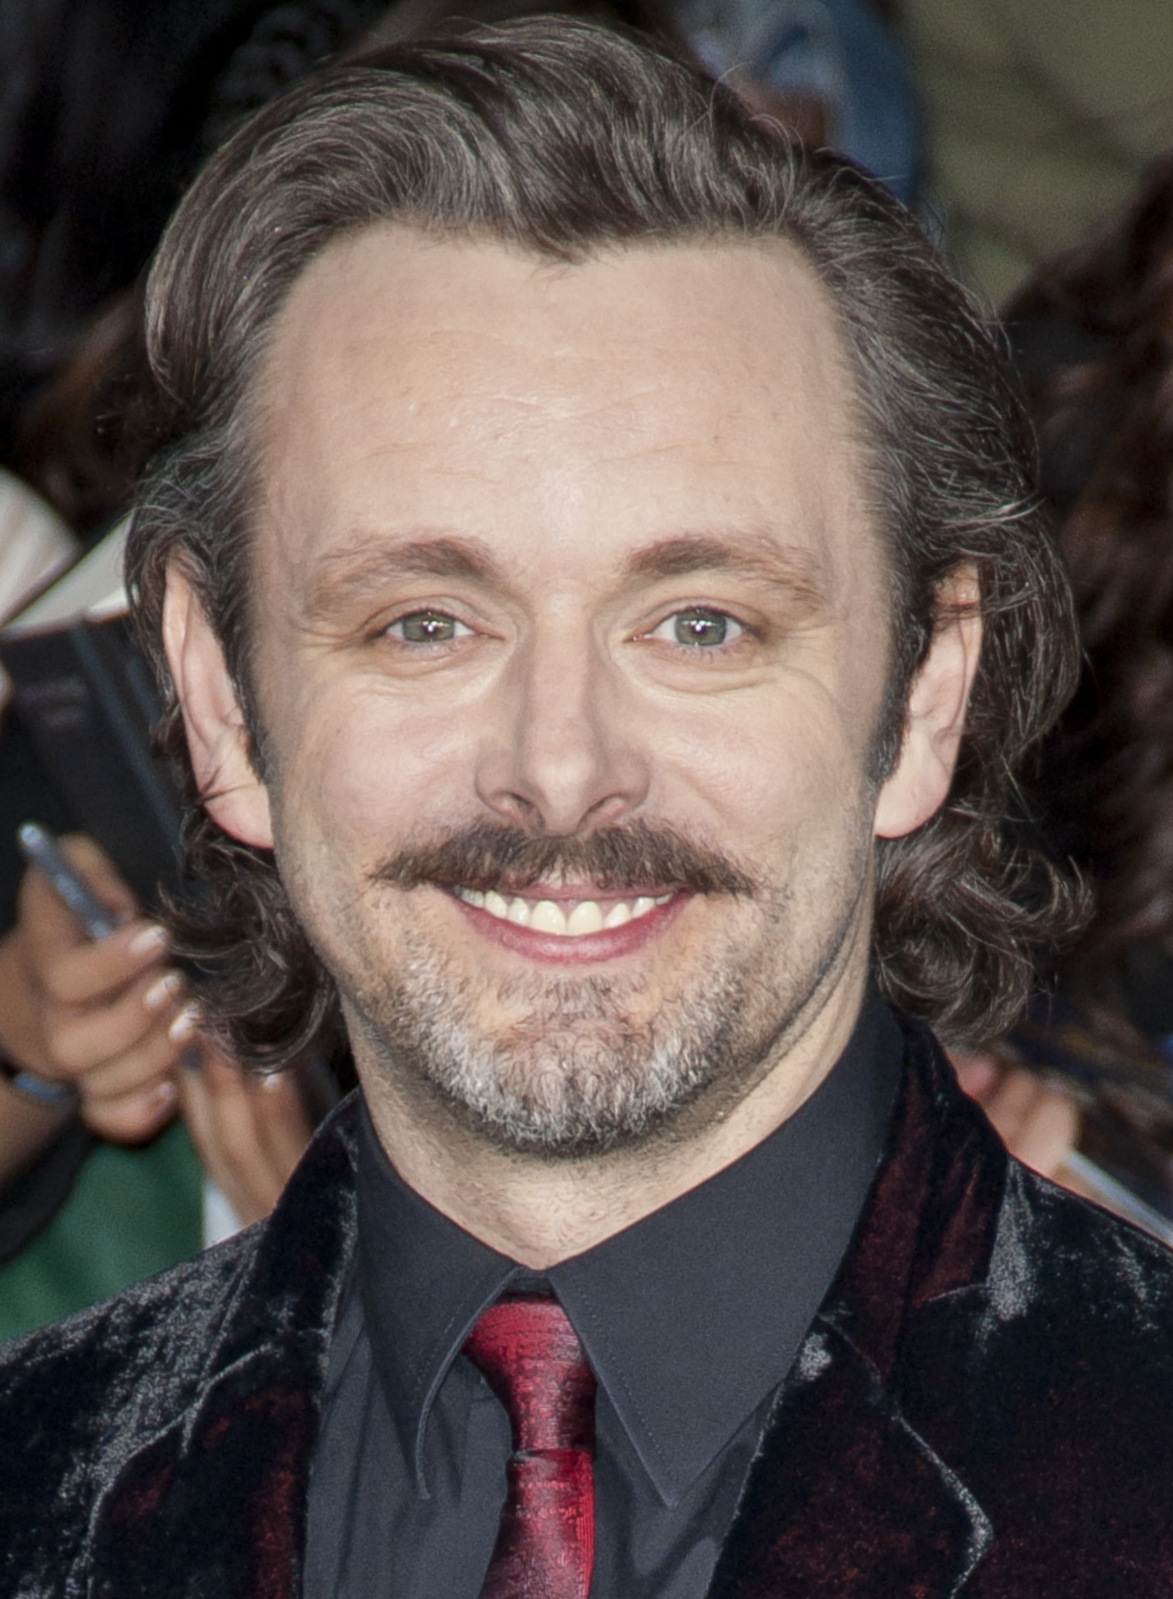 michael sheen 2017michael sheen passengers, michael sheen and kate beckinsale, michael sheen tron, michael sheen height, michael sheen simon pegg, michael sheen кинопоиск, michael sheen doctor who, michael sheen 2016, michael sheen 2017, michael sheen wikipedia, michael sheen nocturnal animals, michael sheen top gear, michael sheen movies, michael sheen young, michael sheen insta, michael sheen father, michael sheen graham norton, michael sheen jimmy kimmel, michael sheen age, michael sheen as tony blair